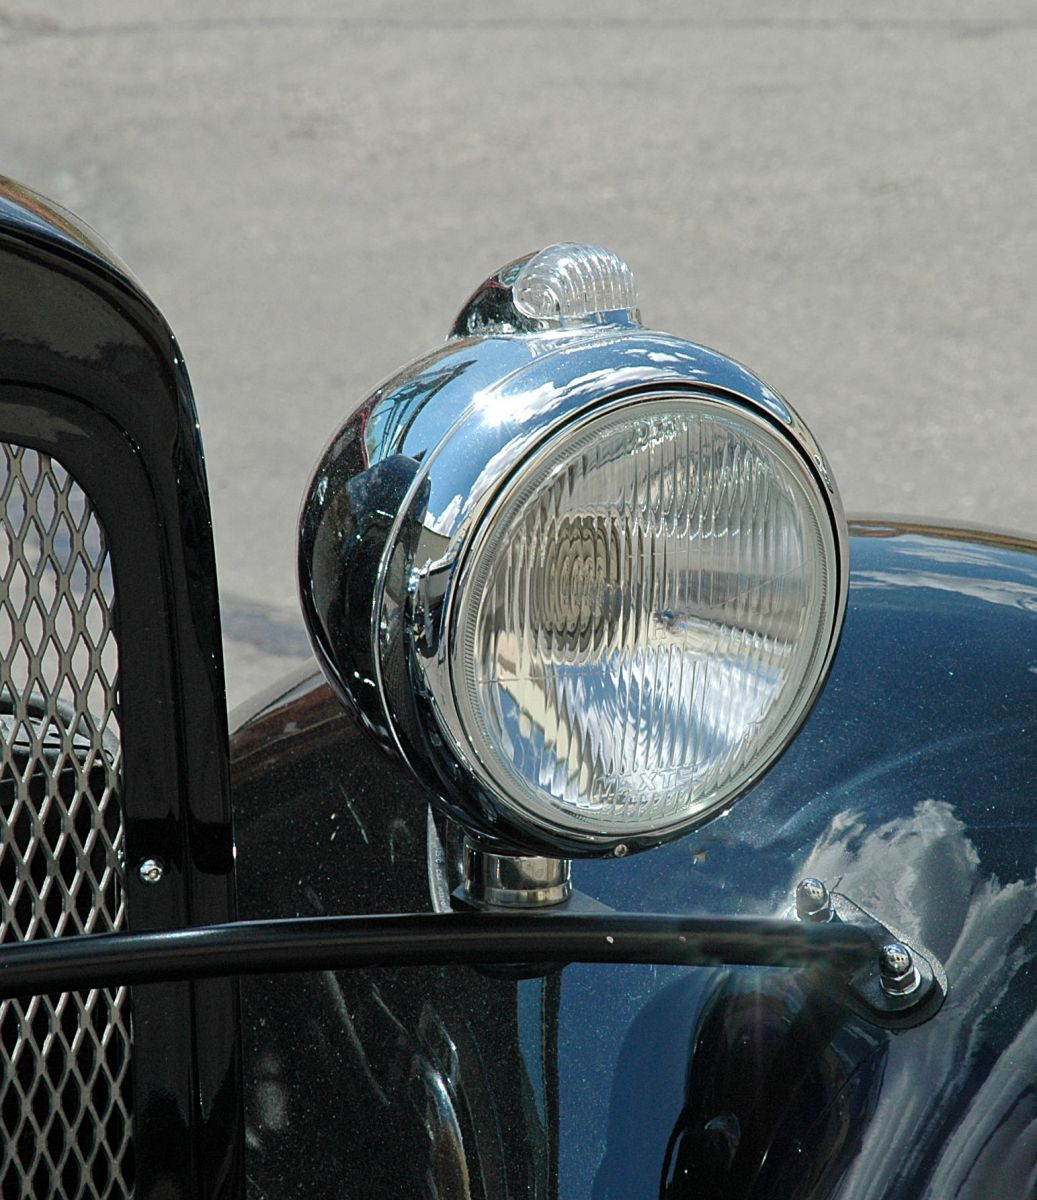 Hot Rod Headlights : Headlights part choosing and mounting them hotrod hotline